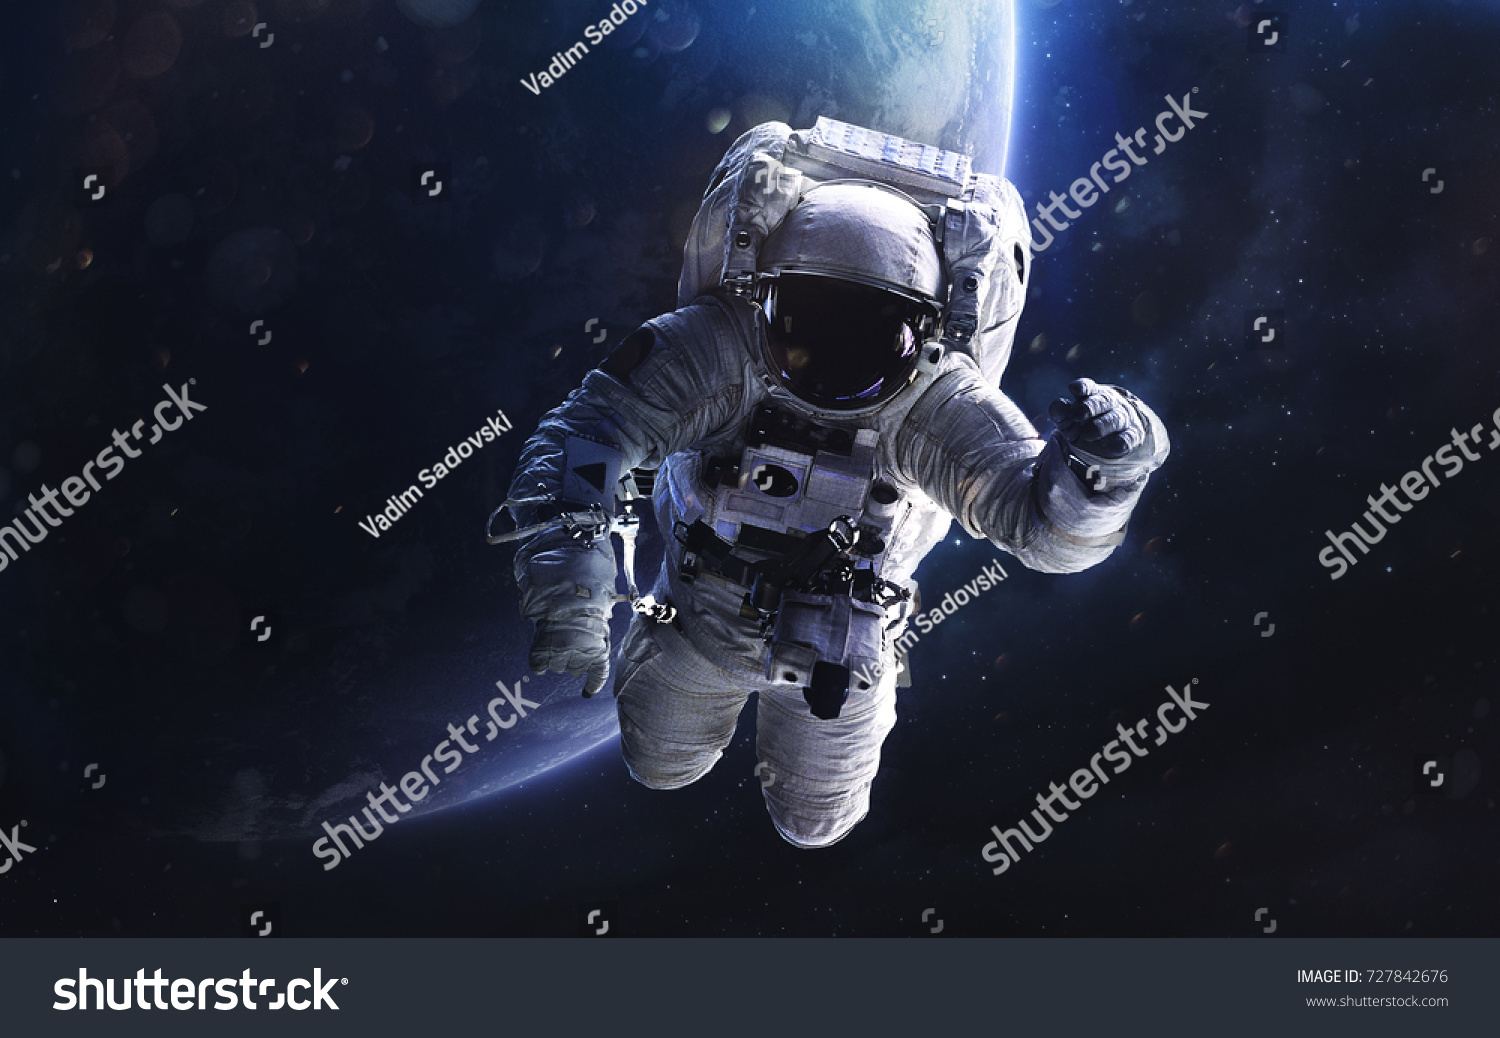 Astronaut deep space image science fiction 727842676 deep space image science fiction fantasy in high resolution ideal for wallpaper and voltagebd Choice Image